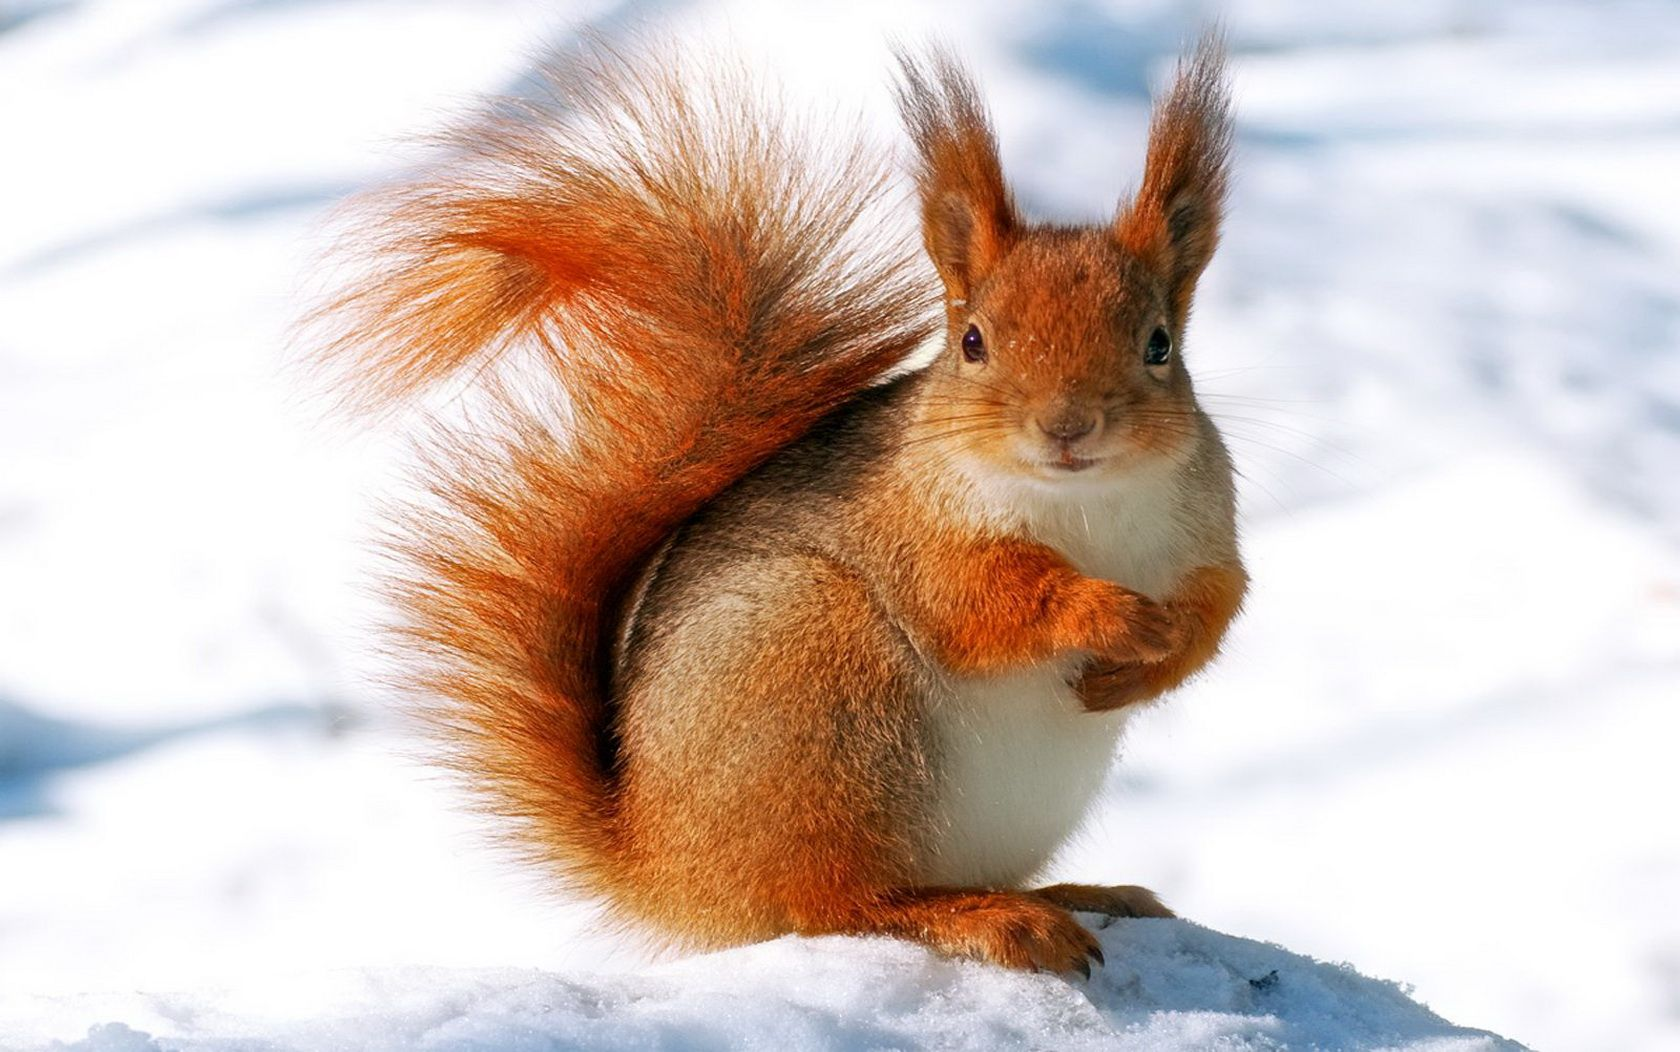 Картинки по запросу good morning have a great day winter squirrel